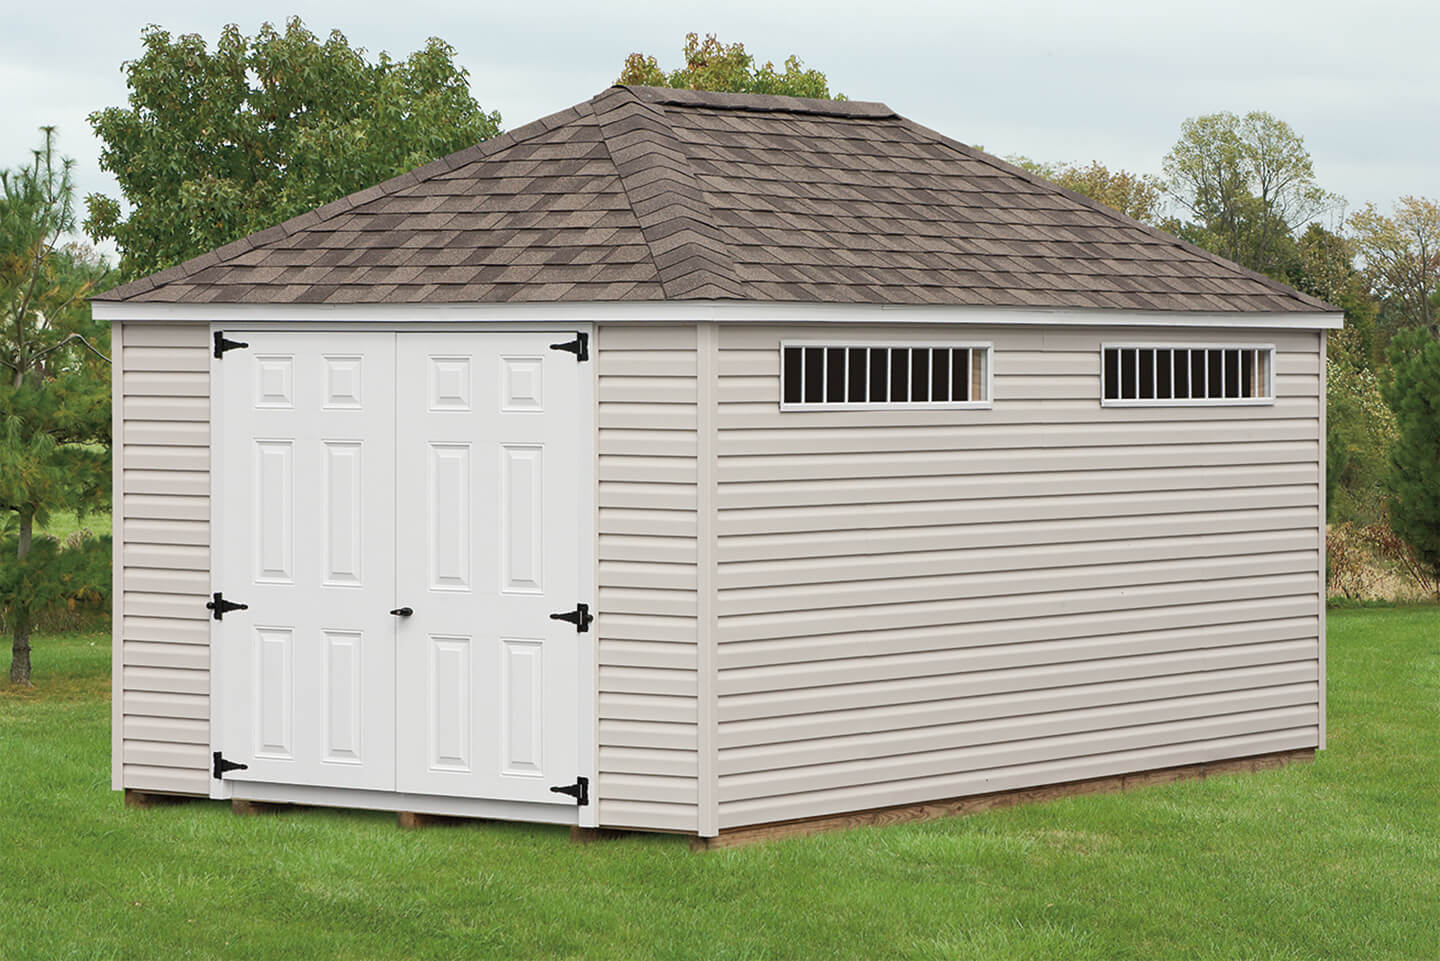 pin storage houston barn sheds cabins austin custom san mega antonio cabin